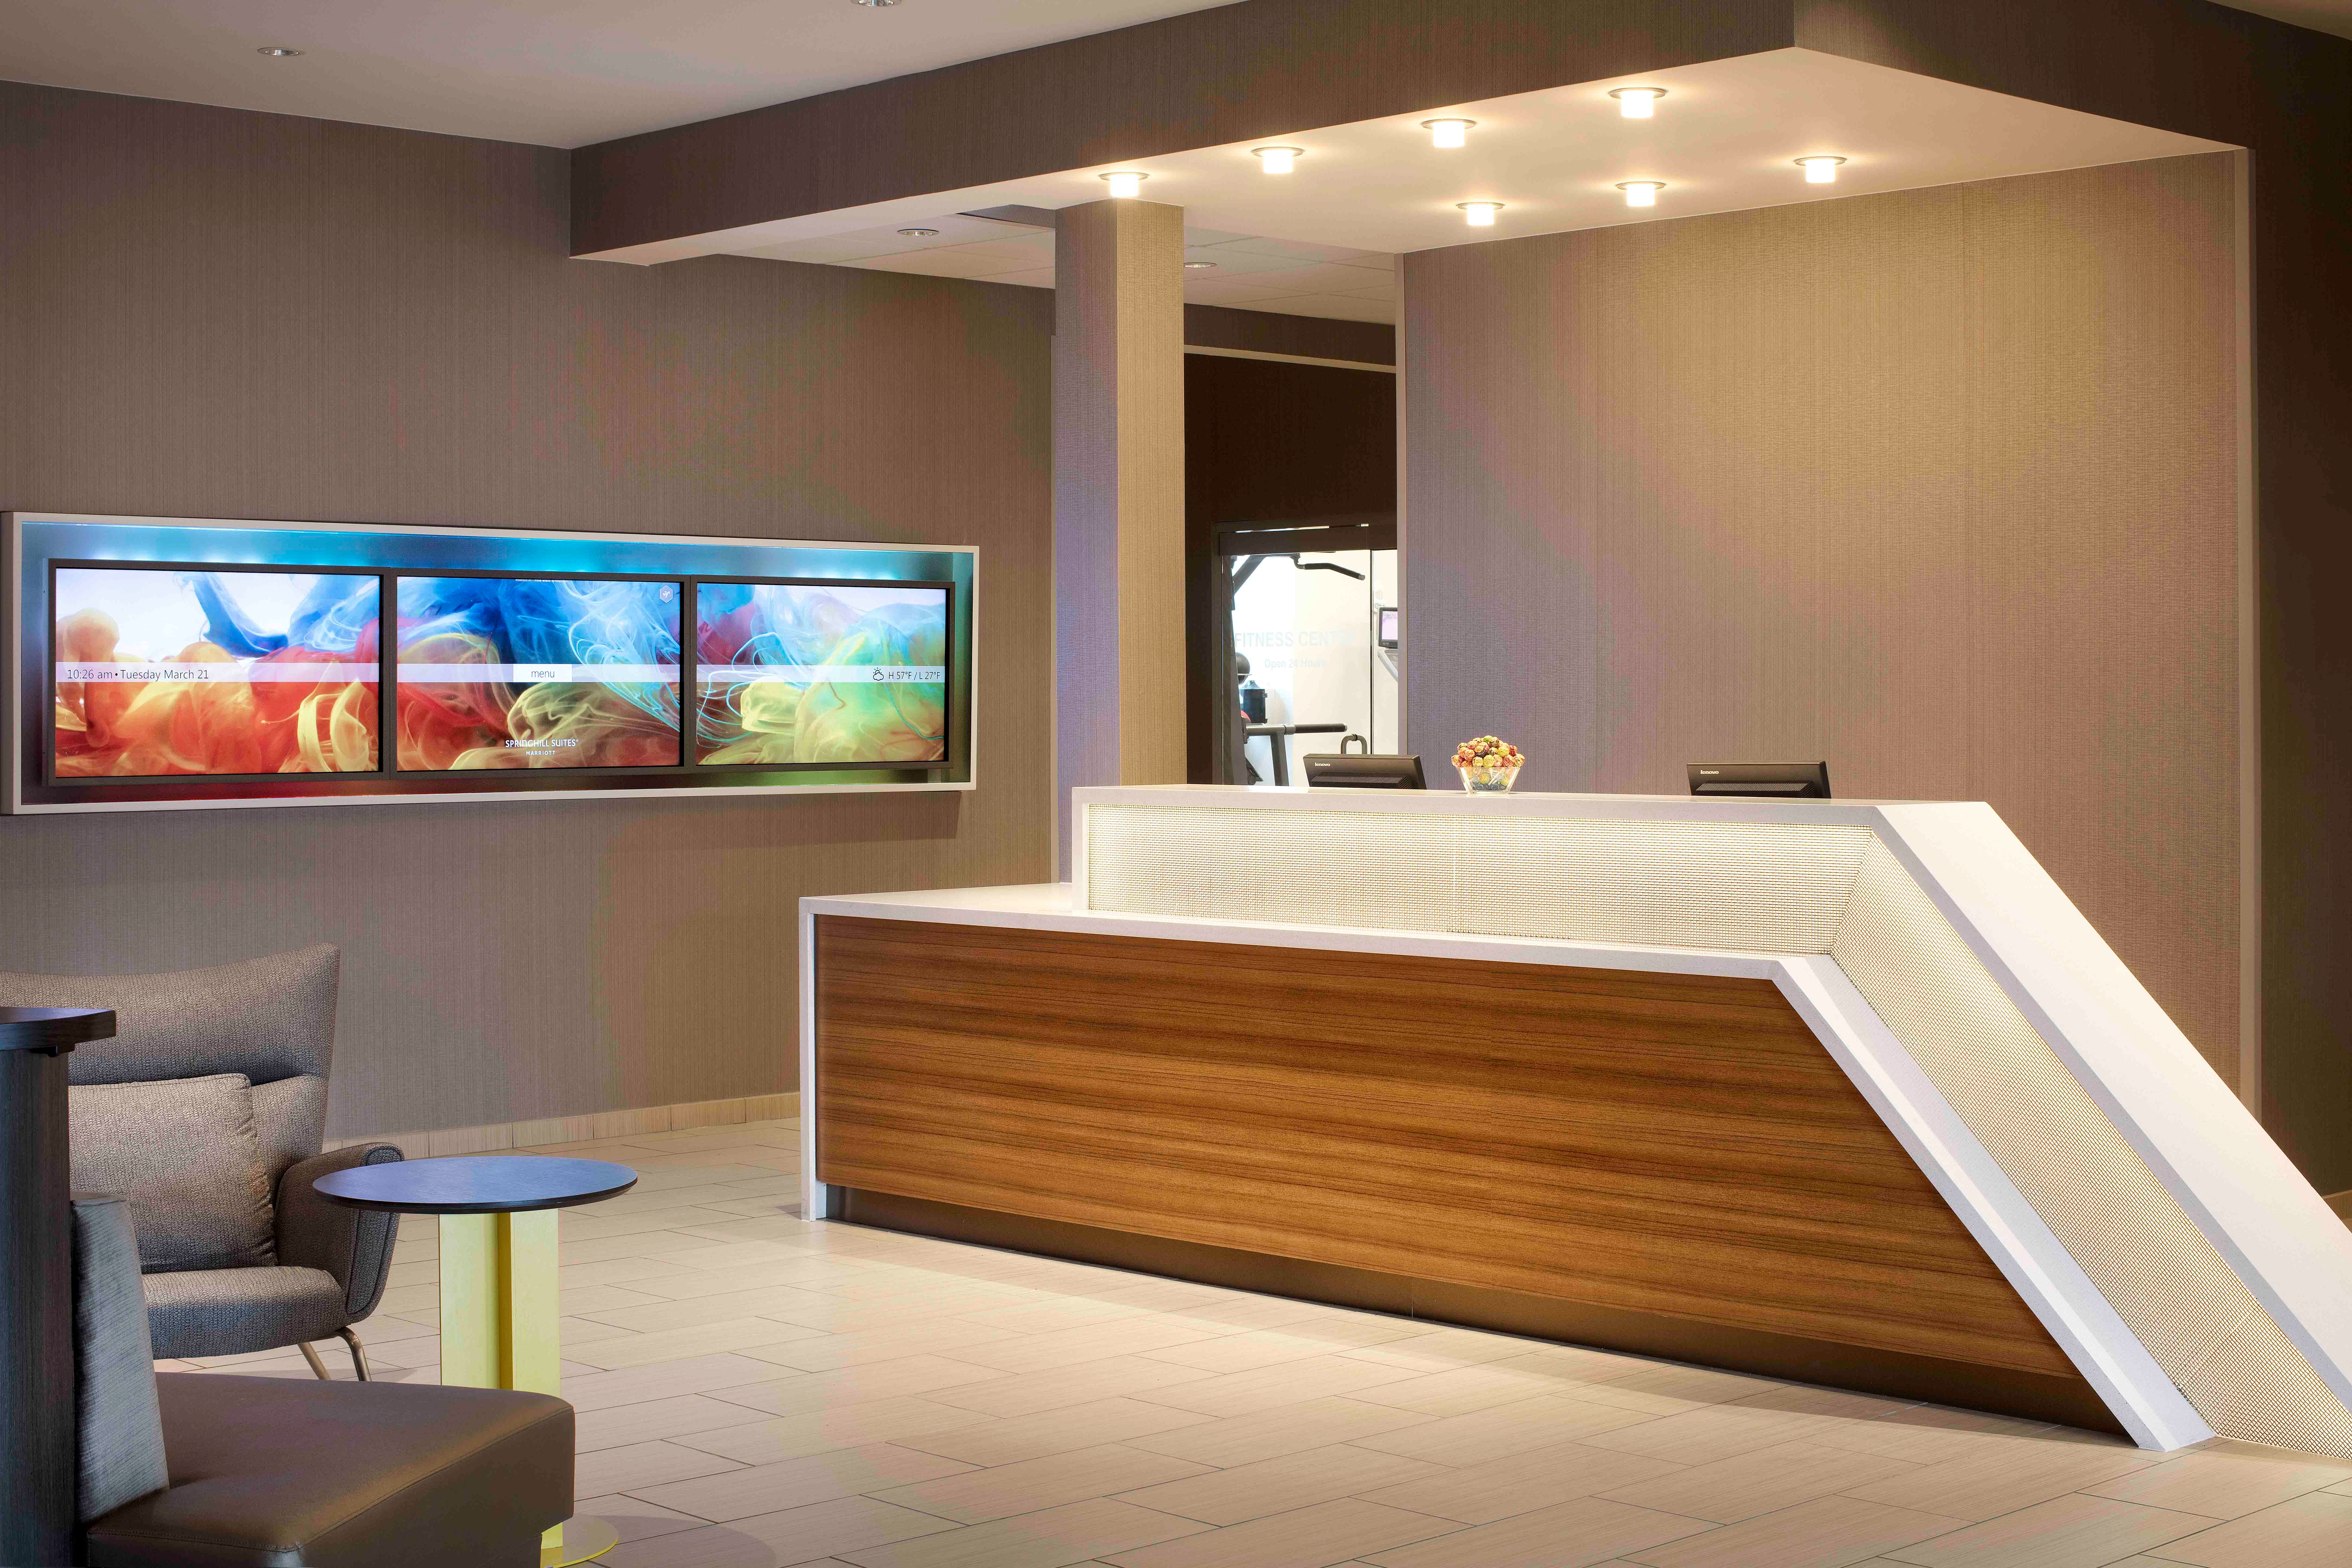 SpringHill Suites by Marriott Indianapolis Downtown image 3